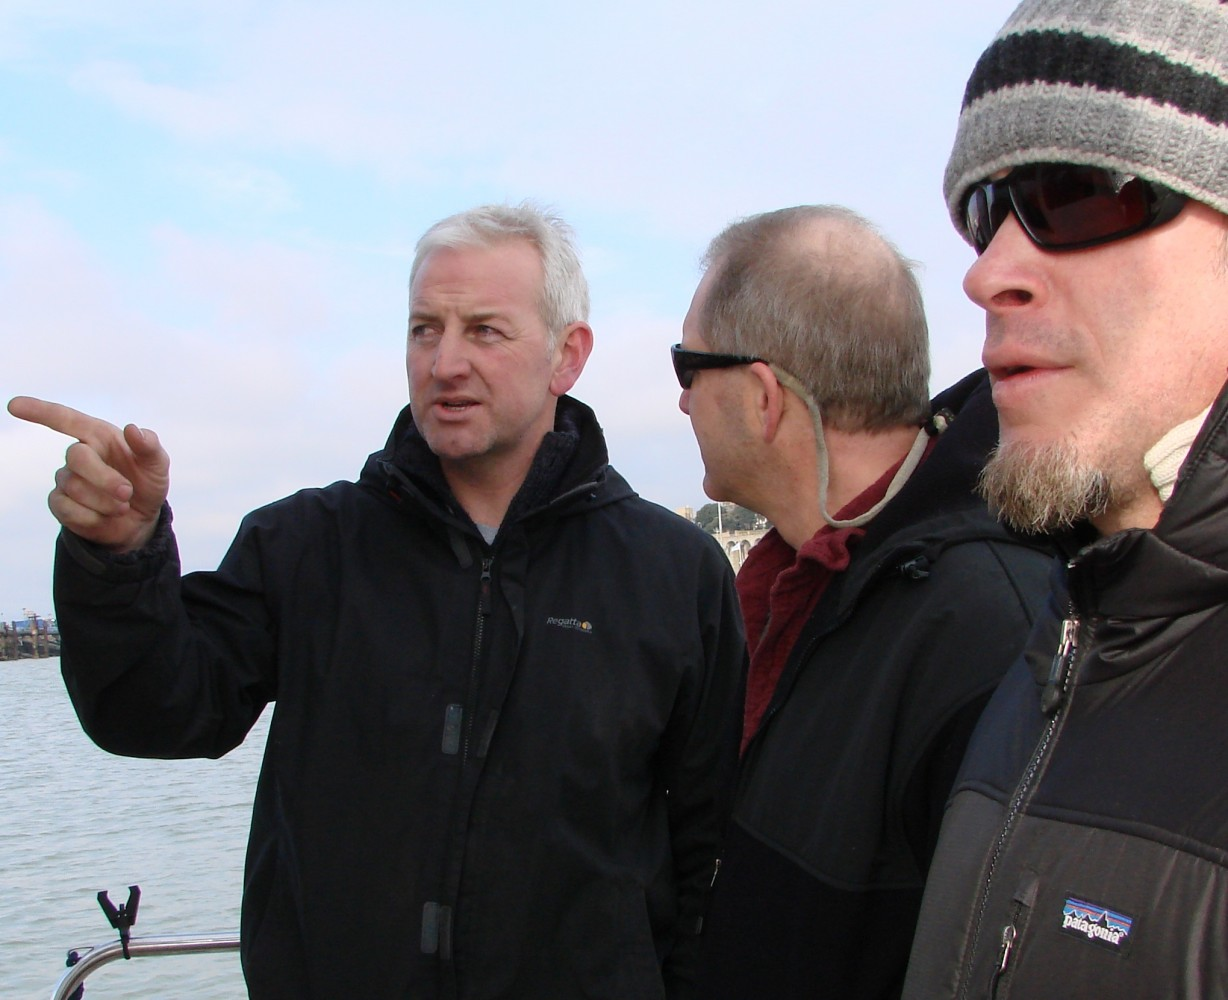 Merlin Jackson advising US fishermen Rick Bellavance and John McMurray